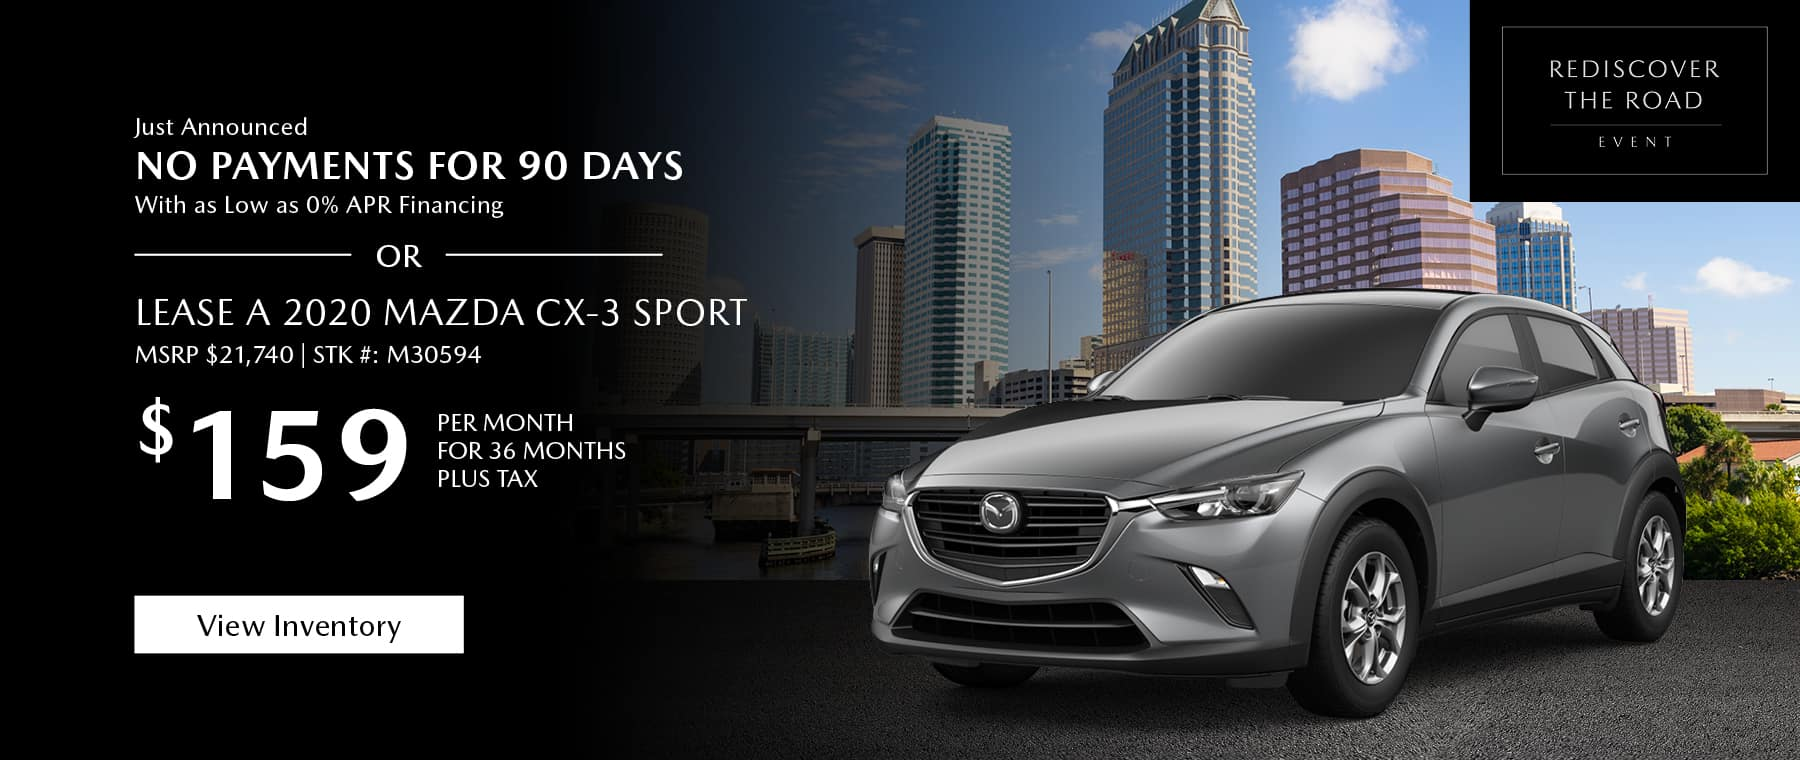 Just Announced, No payments for 90 days with as low as %0 APR financing, or lease the 2019 Mazda CX-3 Sport for $159 per month, plus tax for 36 months. Click or tap here to view our inventory.